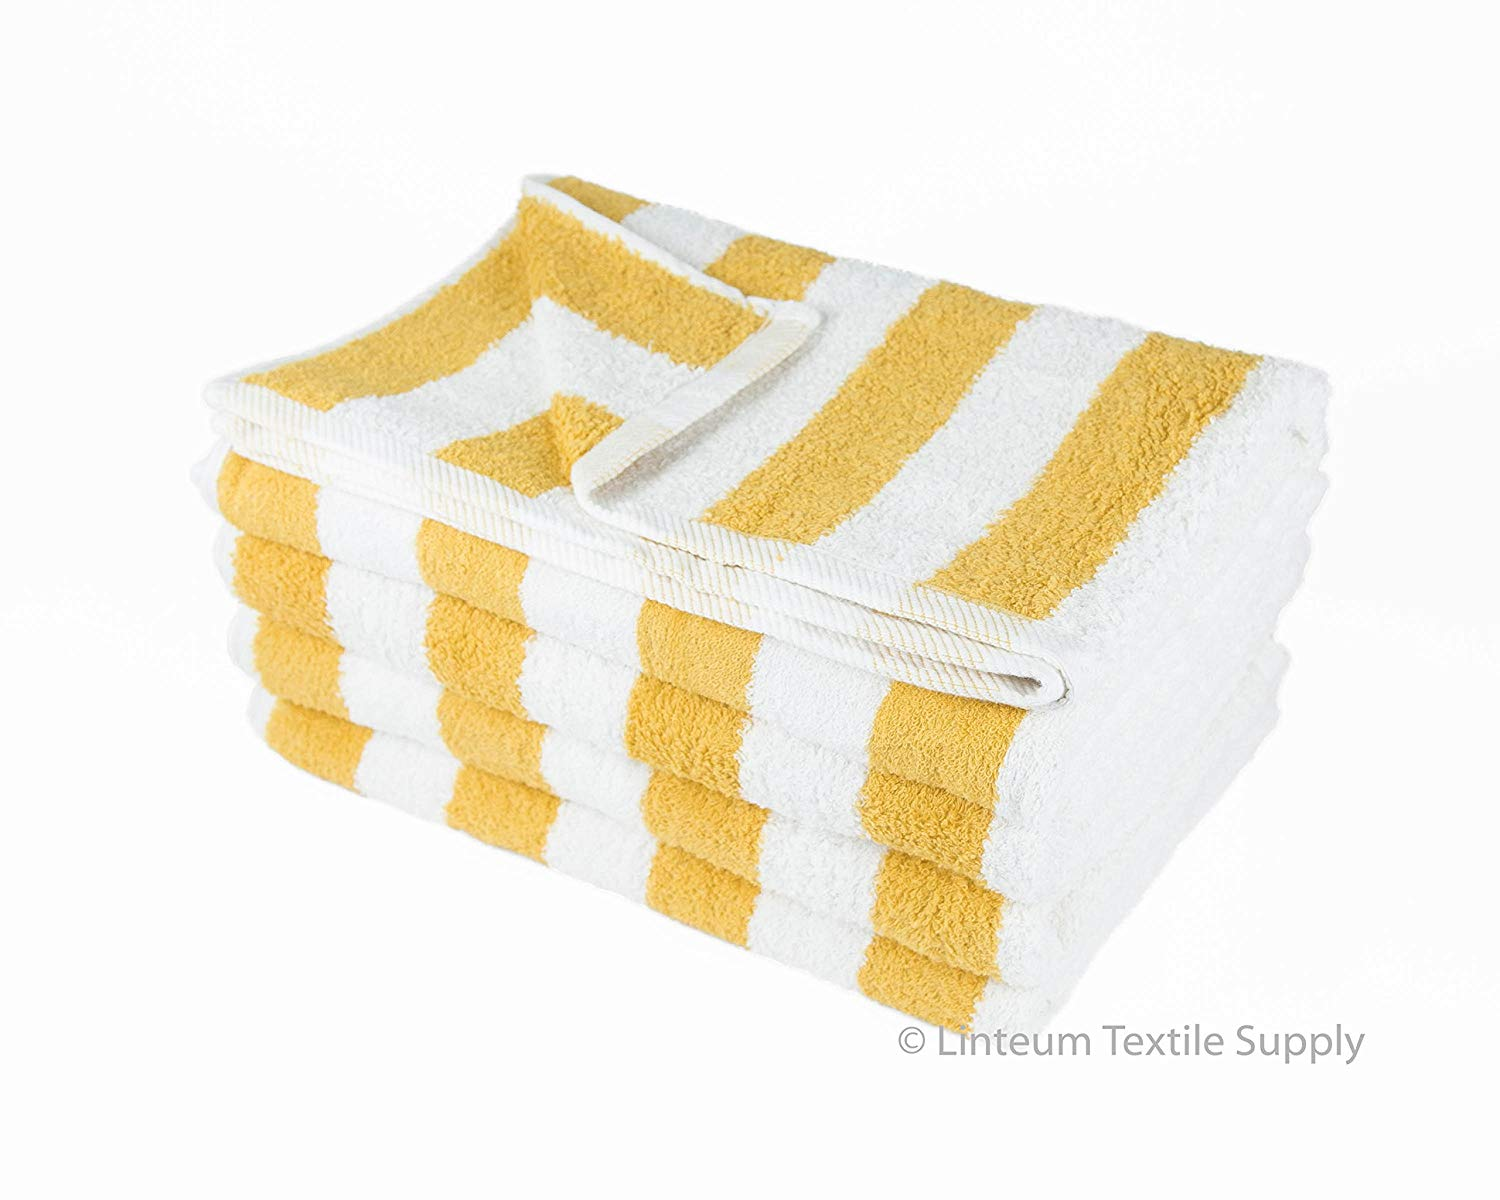 Surprising Buy A564 Gold And White Ticking Stripes Cotton Heavy Duty Bralicious Painted Fabric Chair Ideas Braliciousco